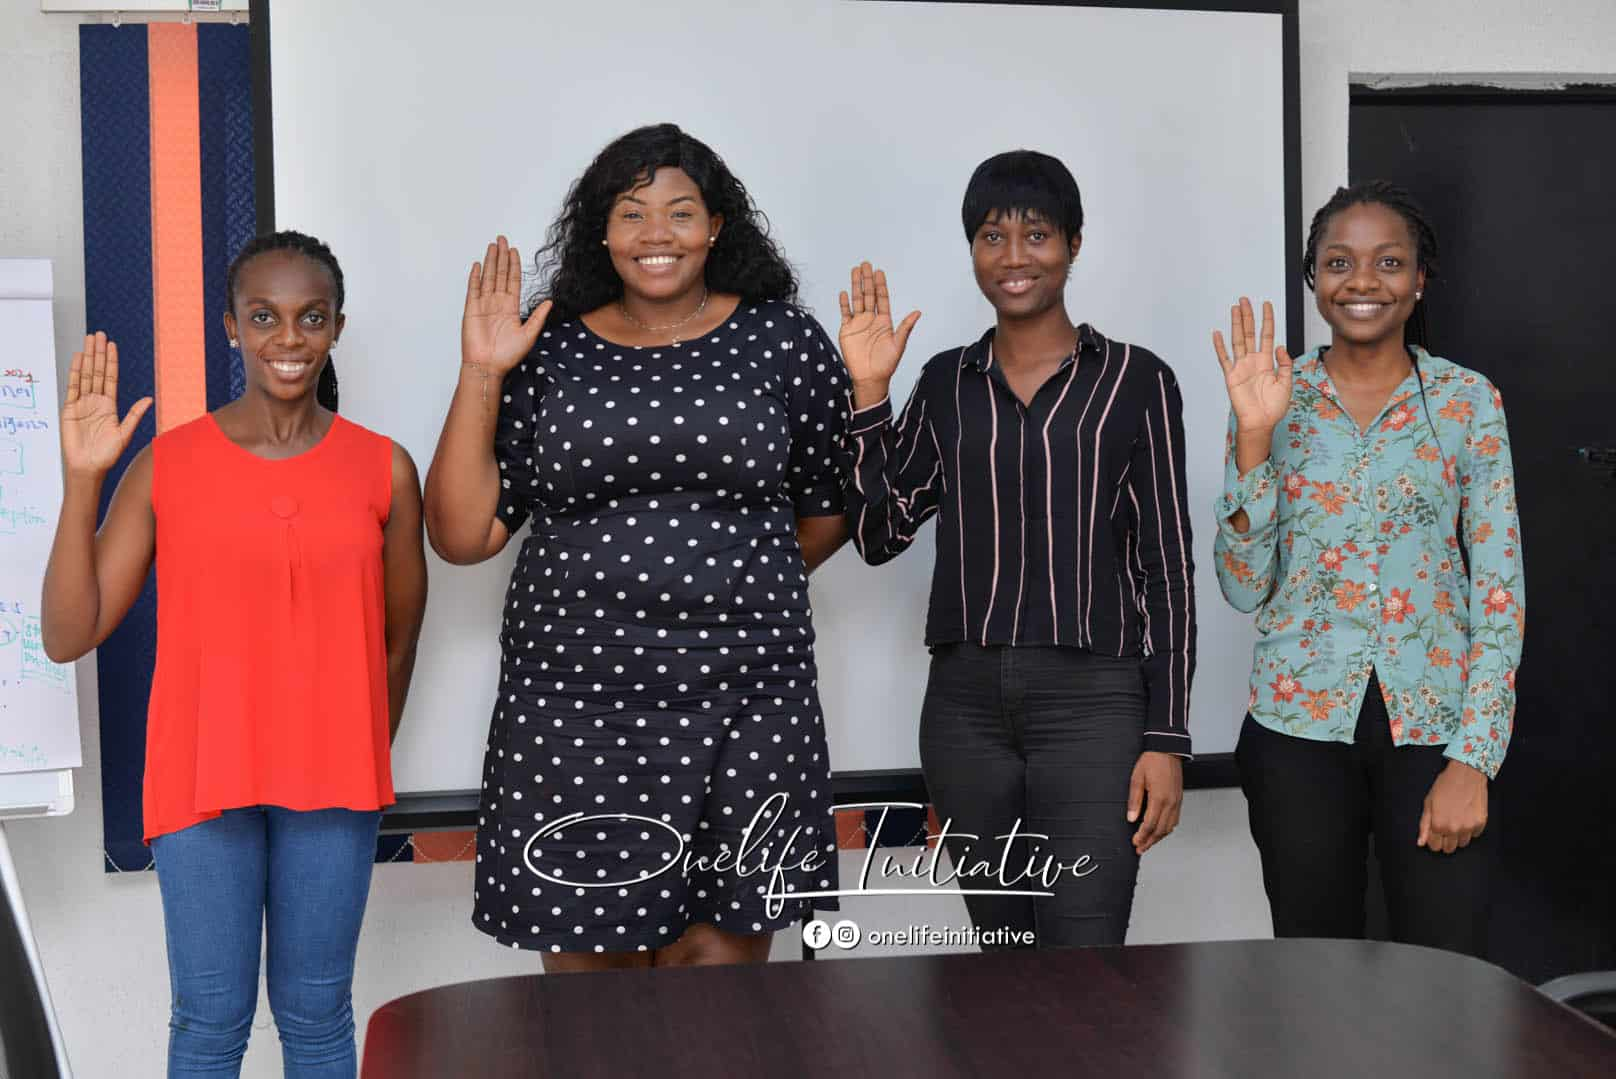 four young women choose to challenge